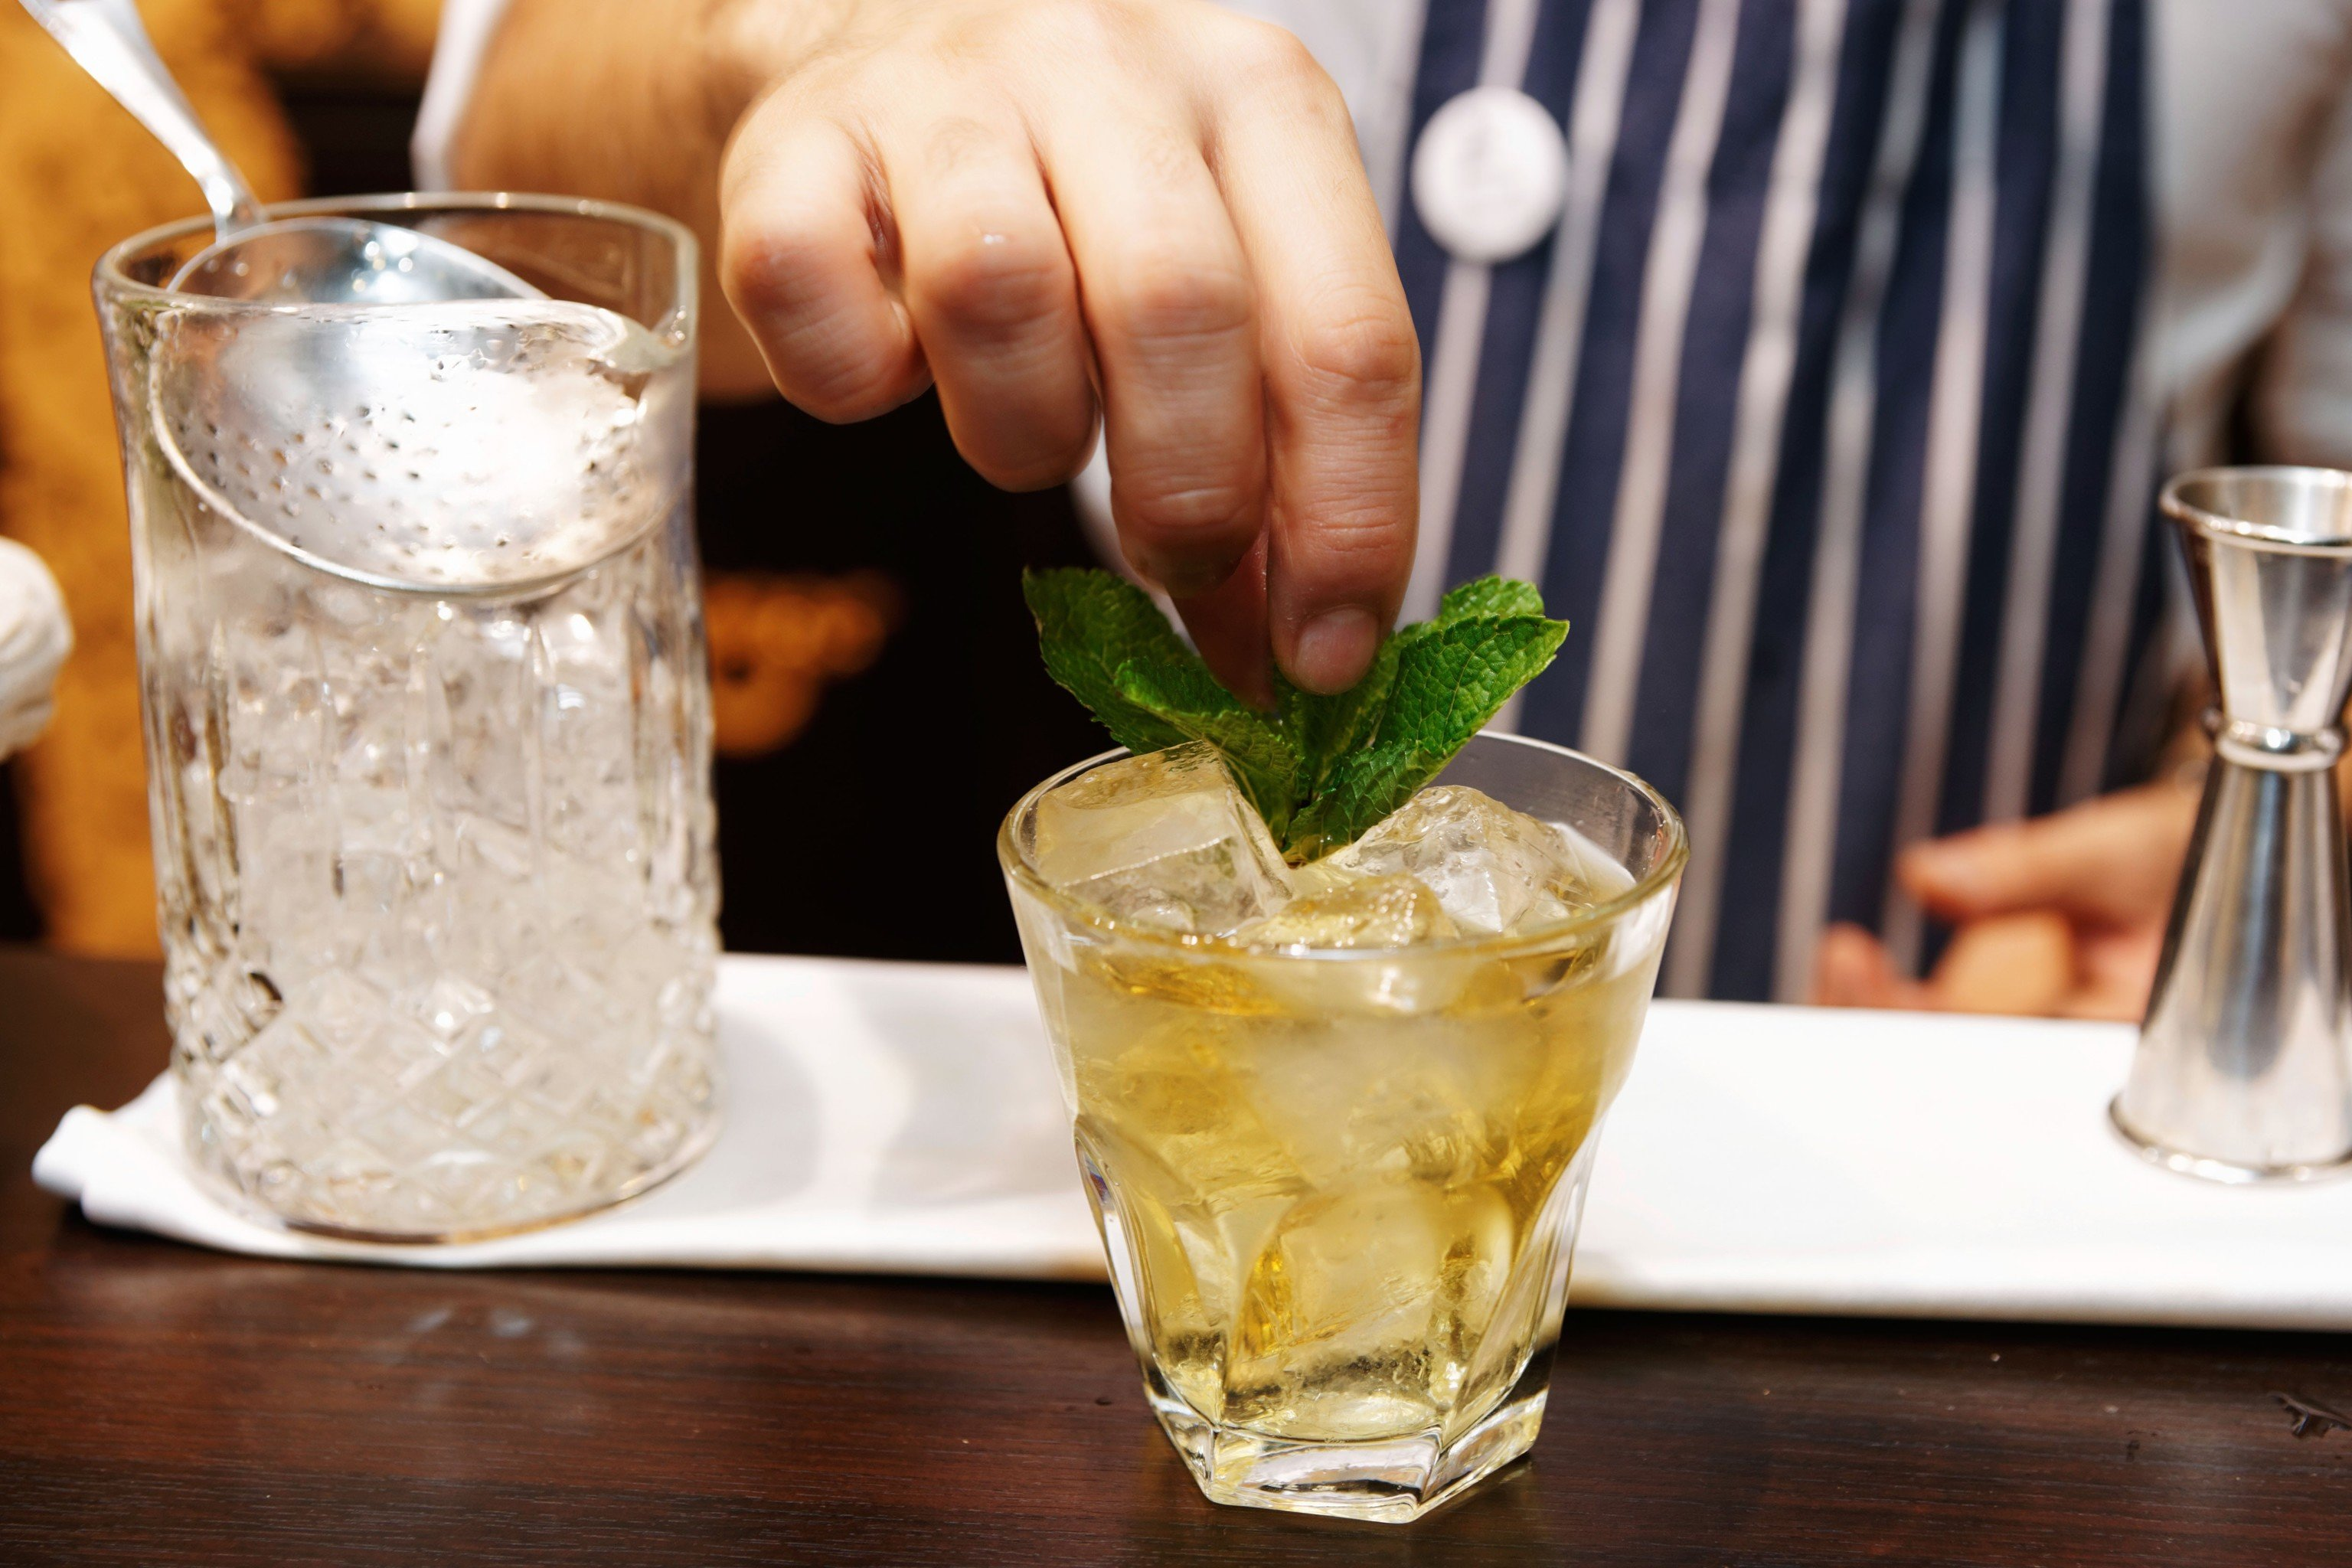 Food + Drink cup table person Drink alcoholic beverage cocktail glass mint julep distilled beverage liqueur food produce drinking